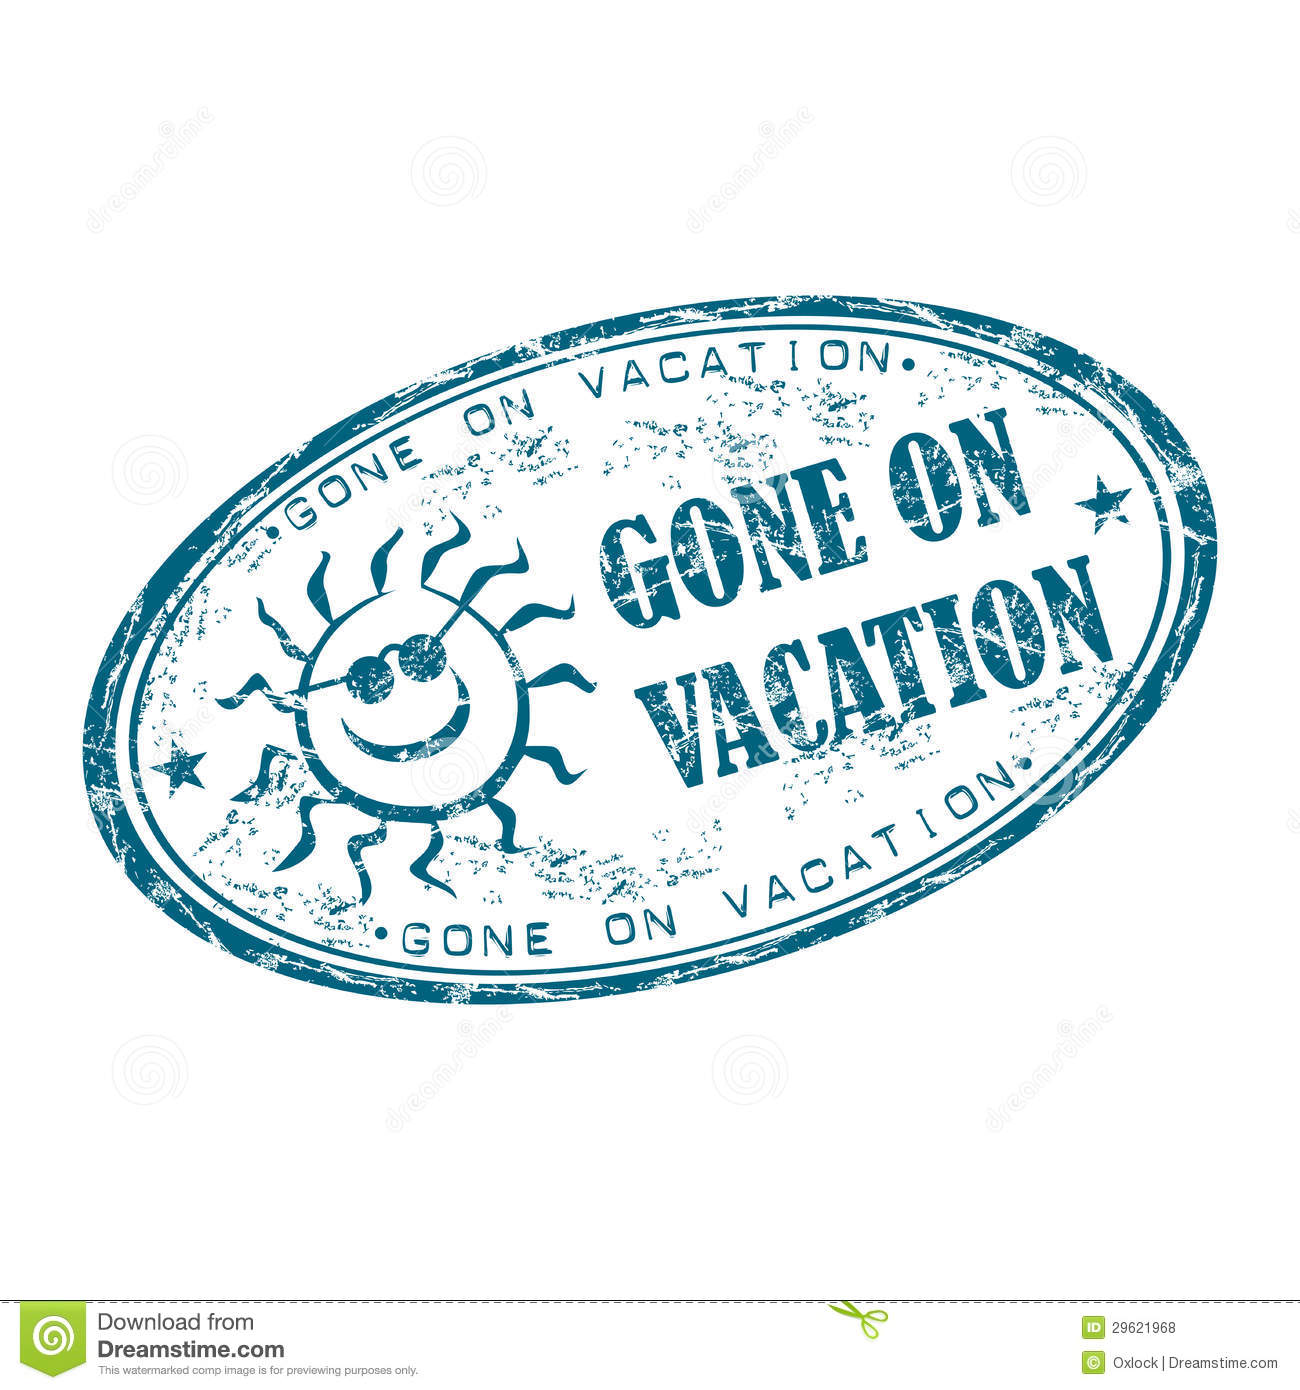 gone on vacation rubber stamp royalty free stock photos free vacation clipart images free vacation clipart images